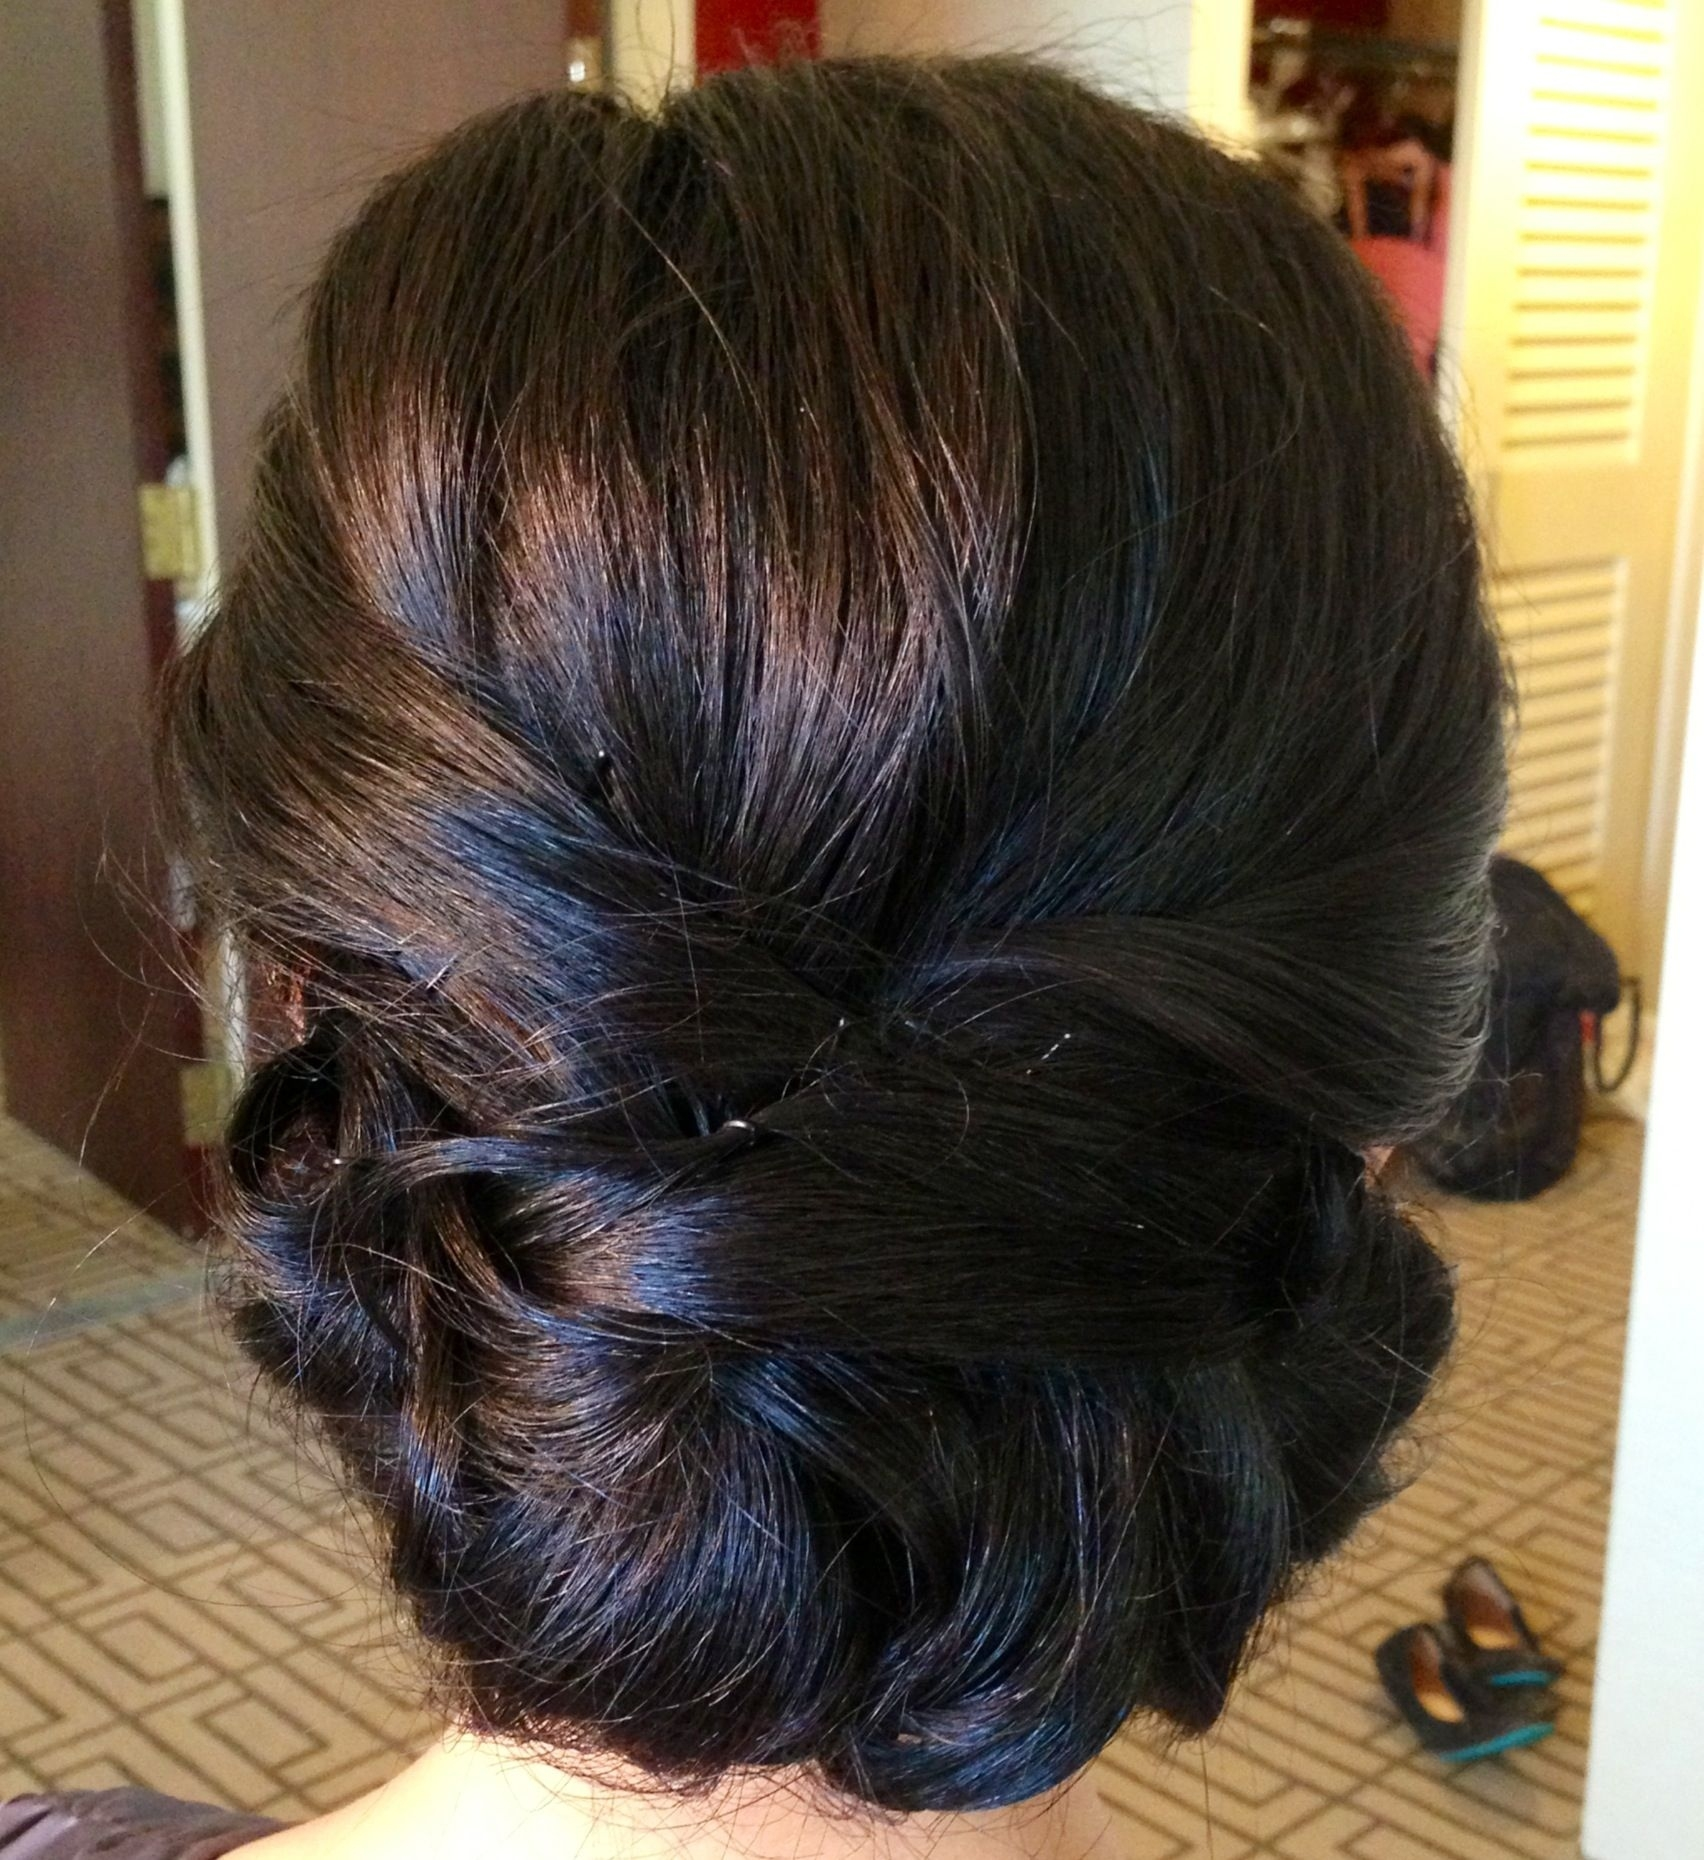 16 Fascinating Asian Hairstyles In 2019   Bridal Hair And Makeup pertaining to Asian Wedding Updo Hairstyles